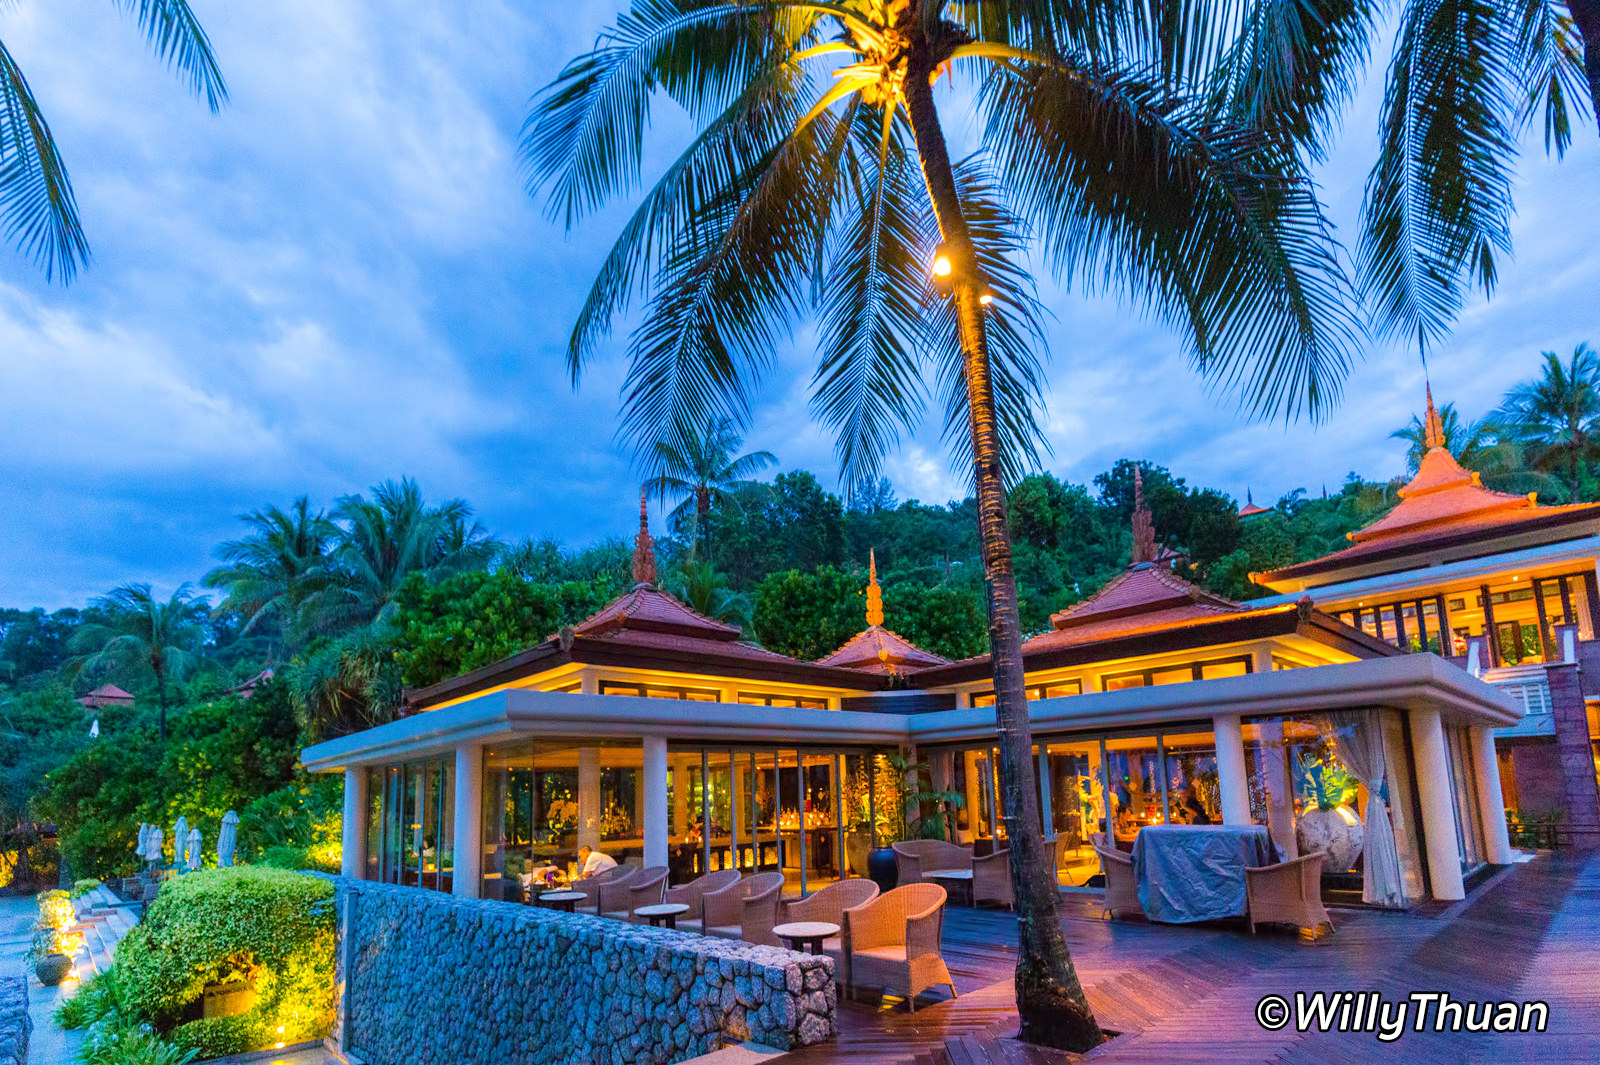 Phuket Michelin Guide List of Restaurants